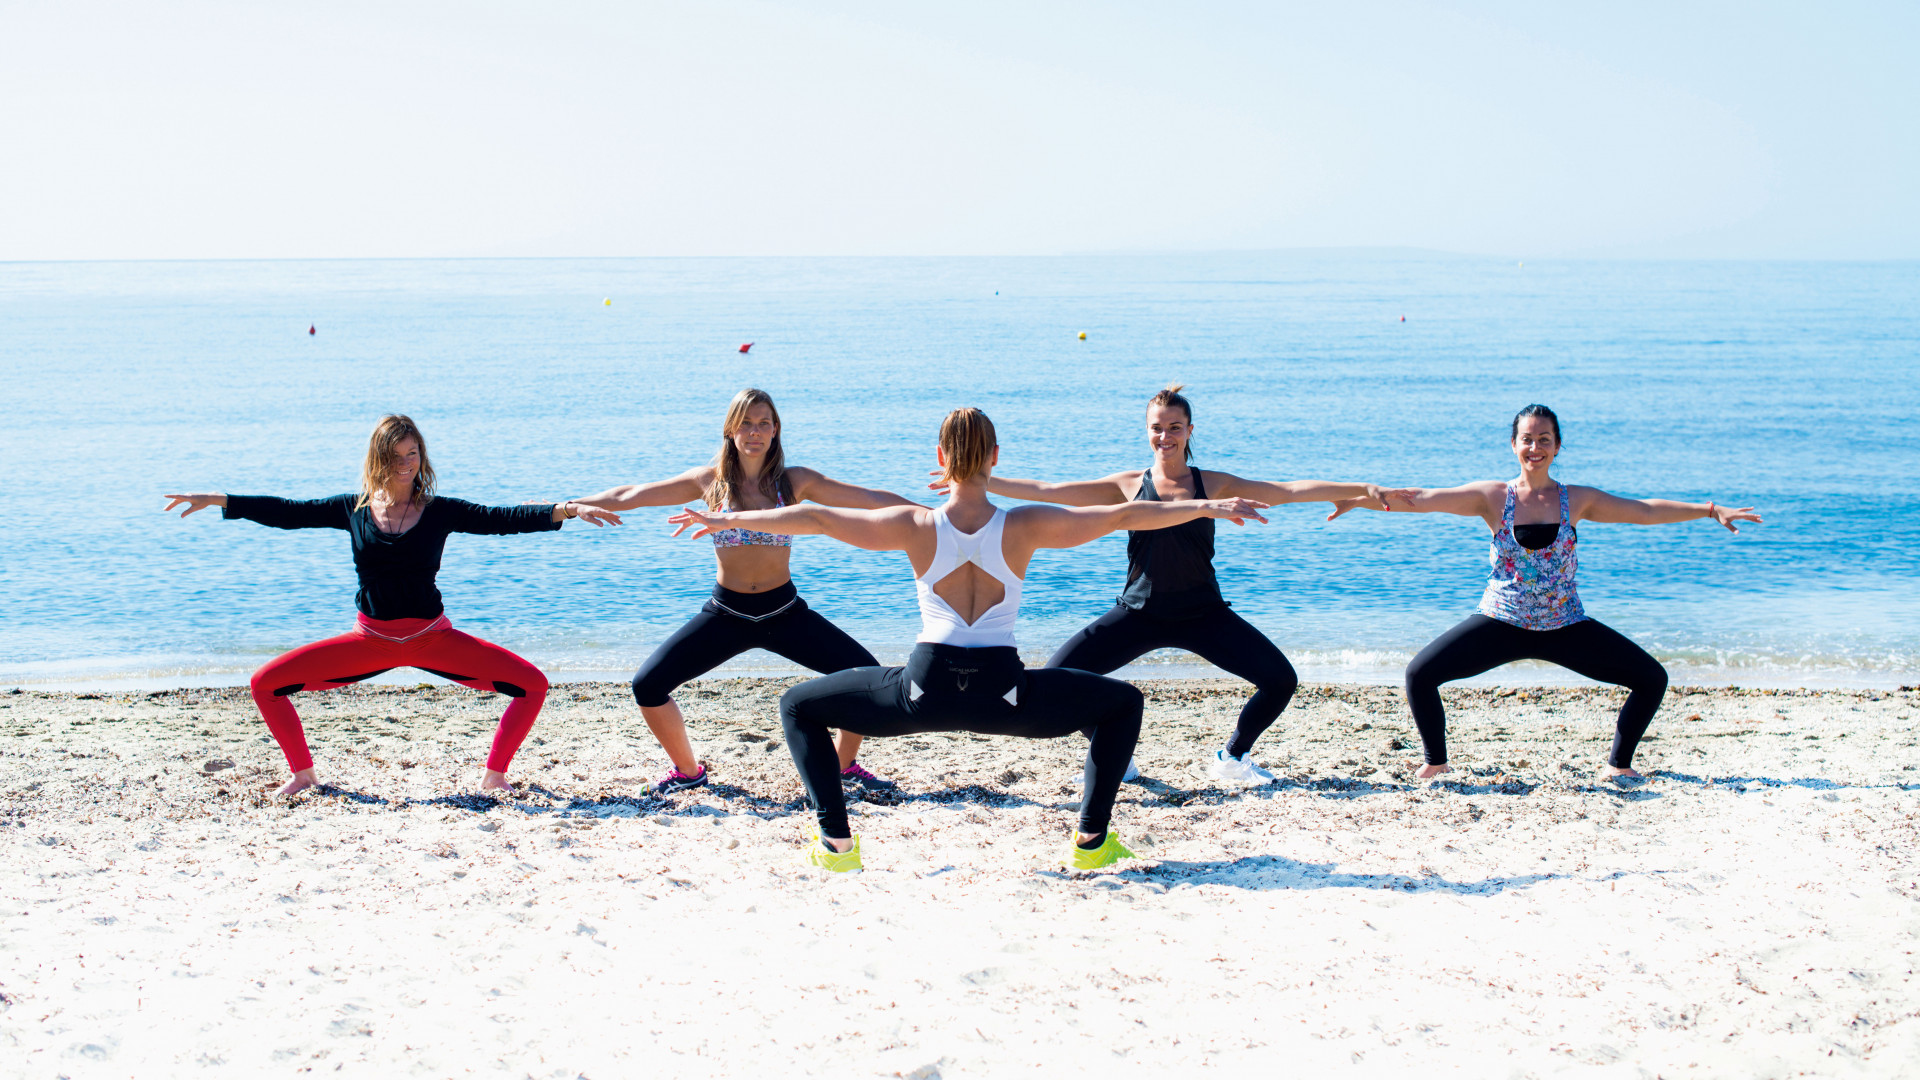 Aerobic fitness on the beach in Ibiza